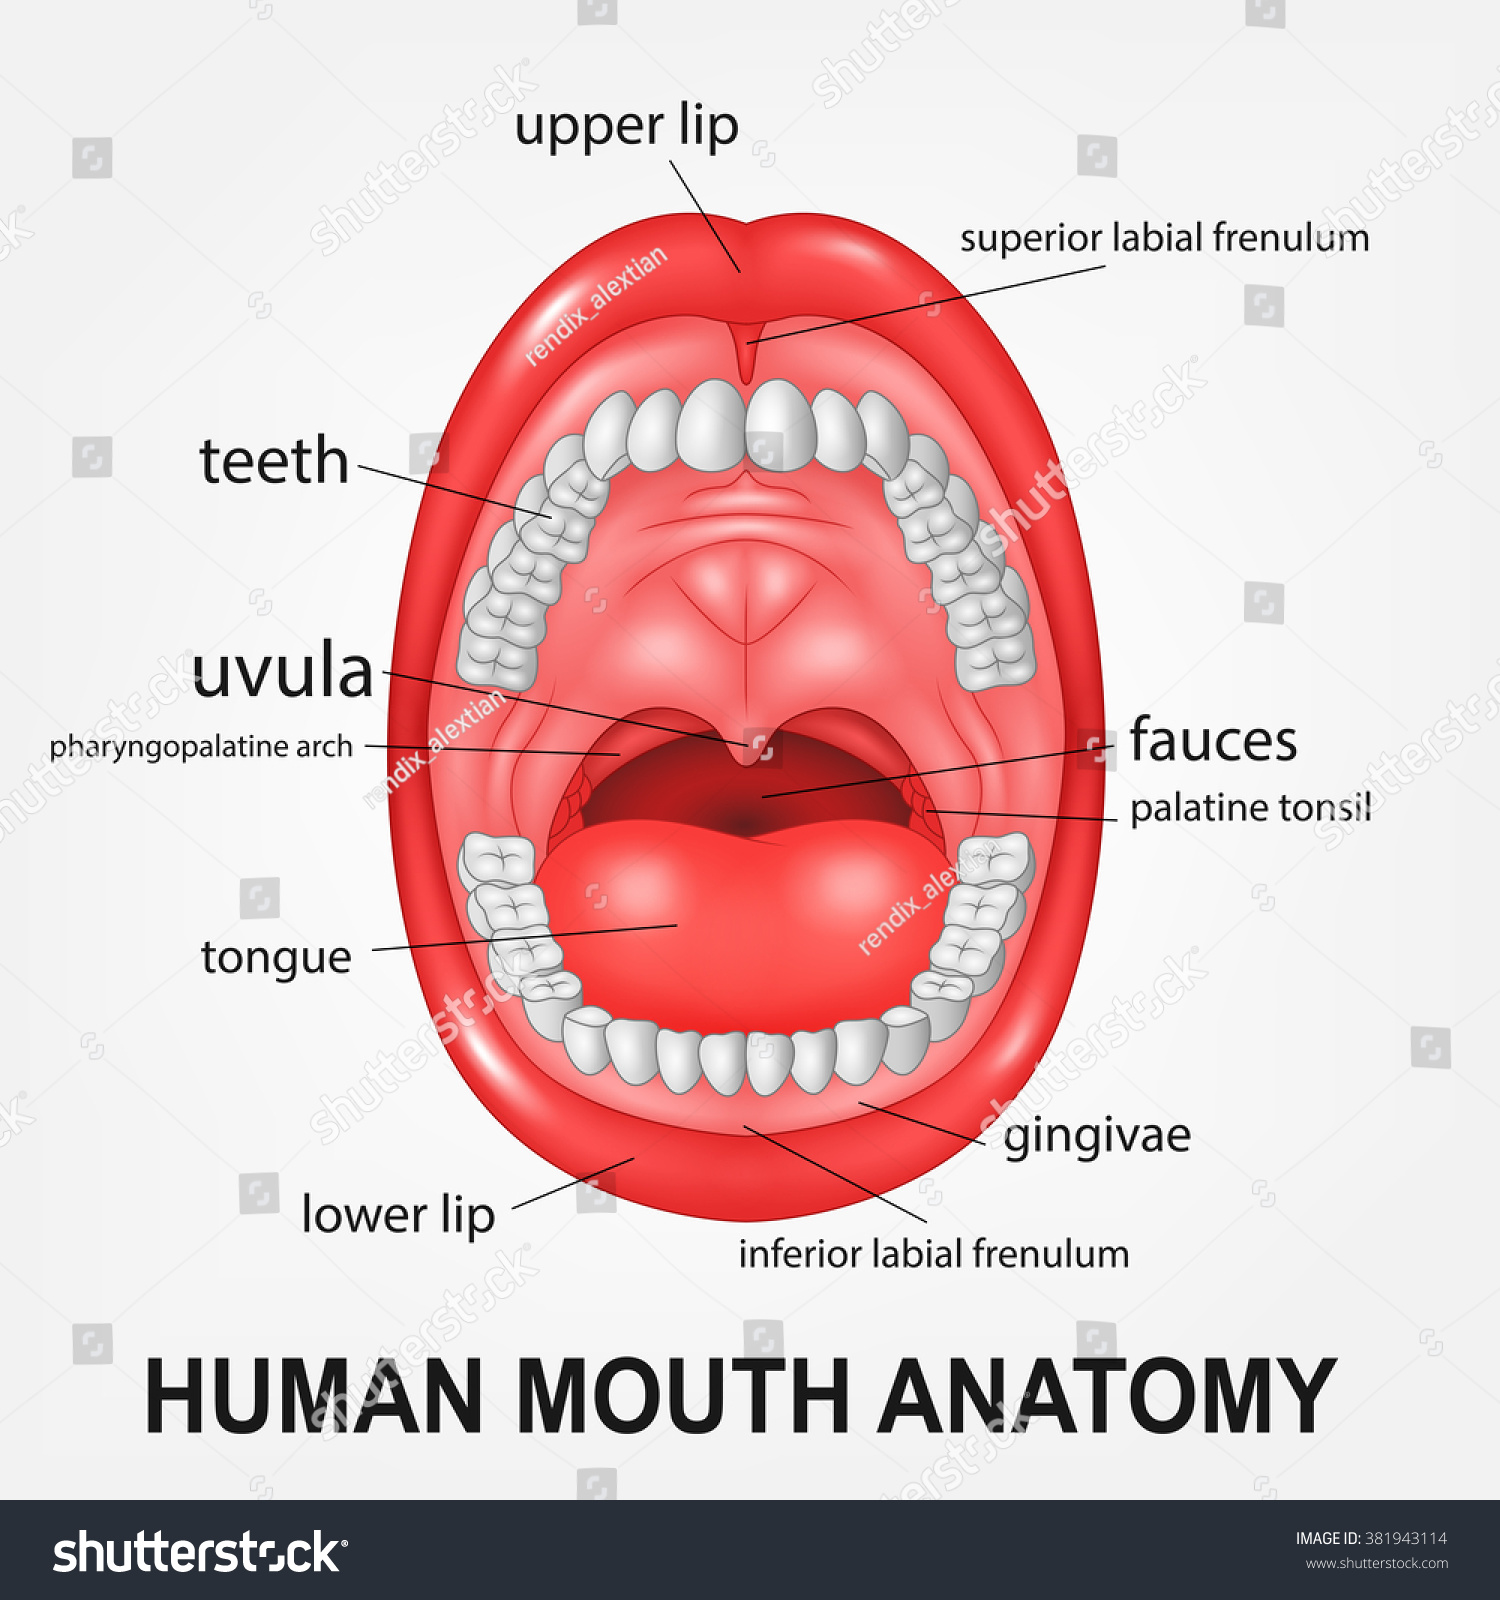 Human Mouth Anatomy Open Mouth Explaining Stock Vector 381943114